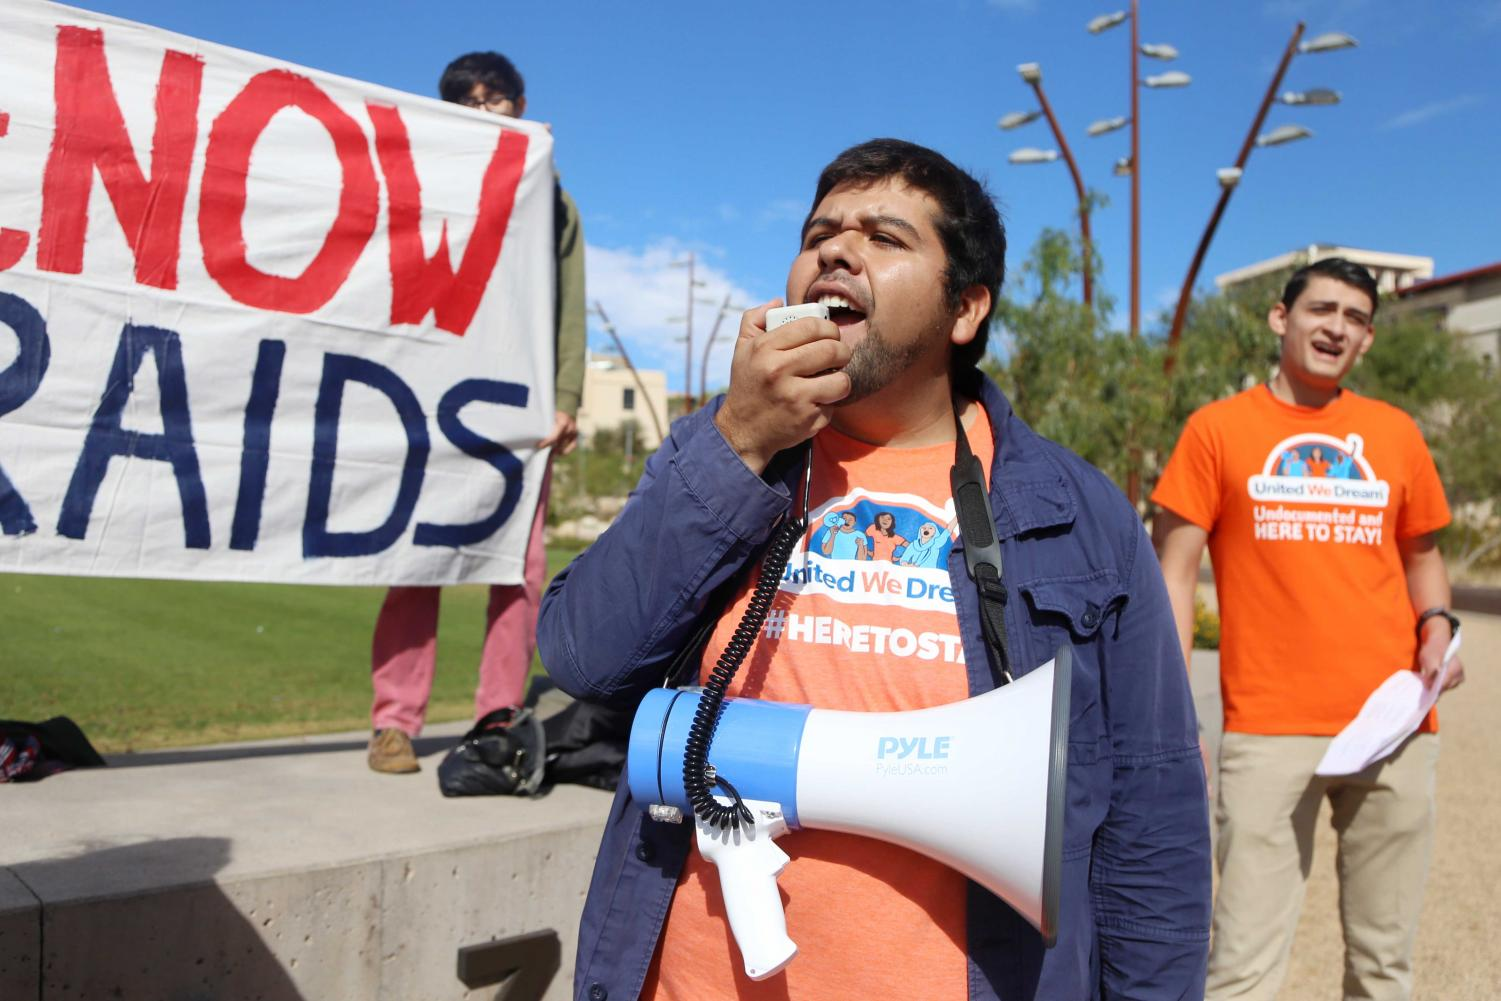 Roberto+Valadez%2C+a+Dreamer%2C+lead+chants+and+introduced+many+of+the+speakers+at+the+protest.+